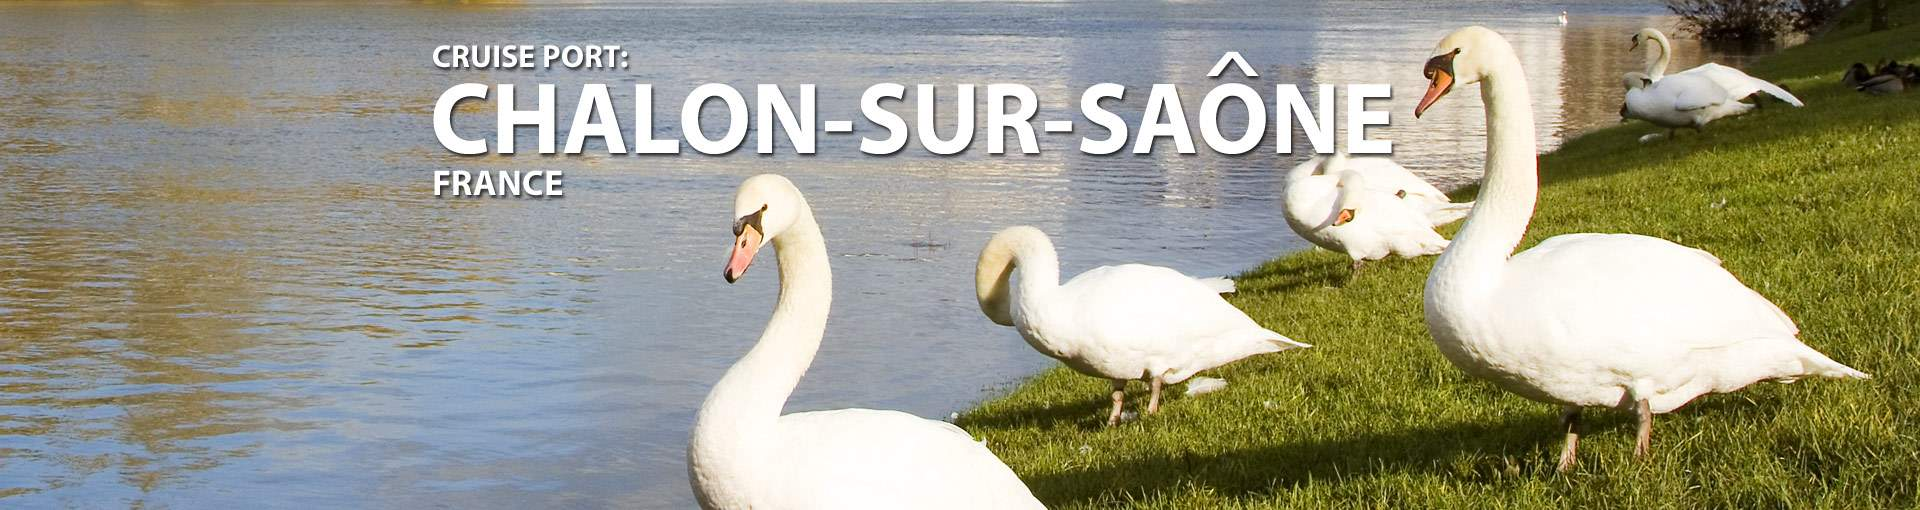 Cruises from Chalon-sur-Saone, France